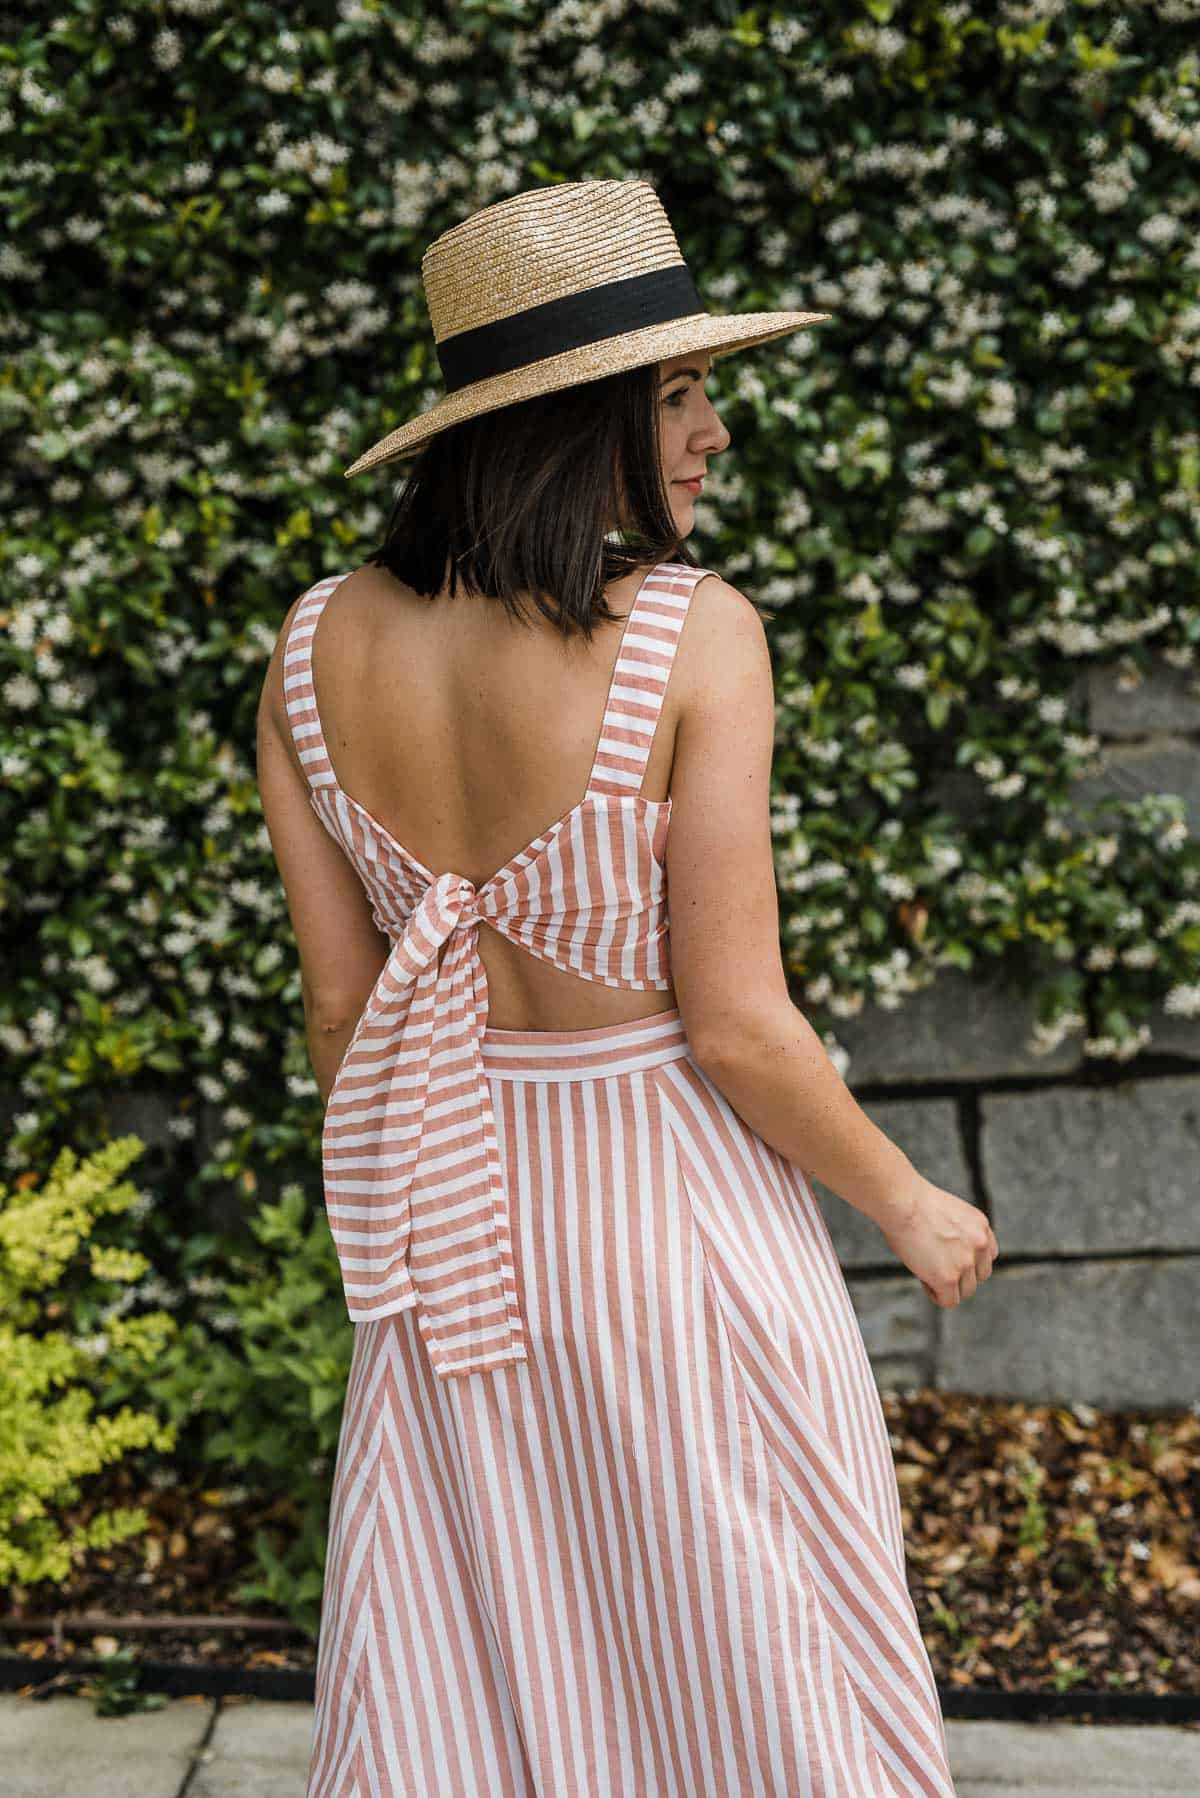 Jessica Camerata is sharing a Paddo To Palmy Sizing Review